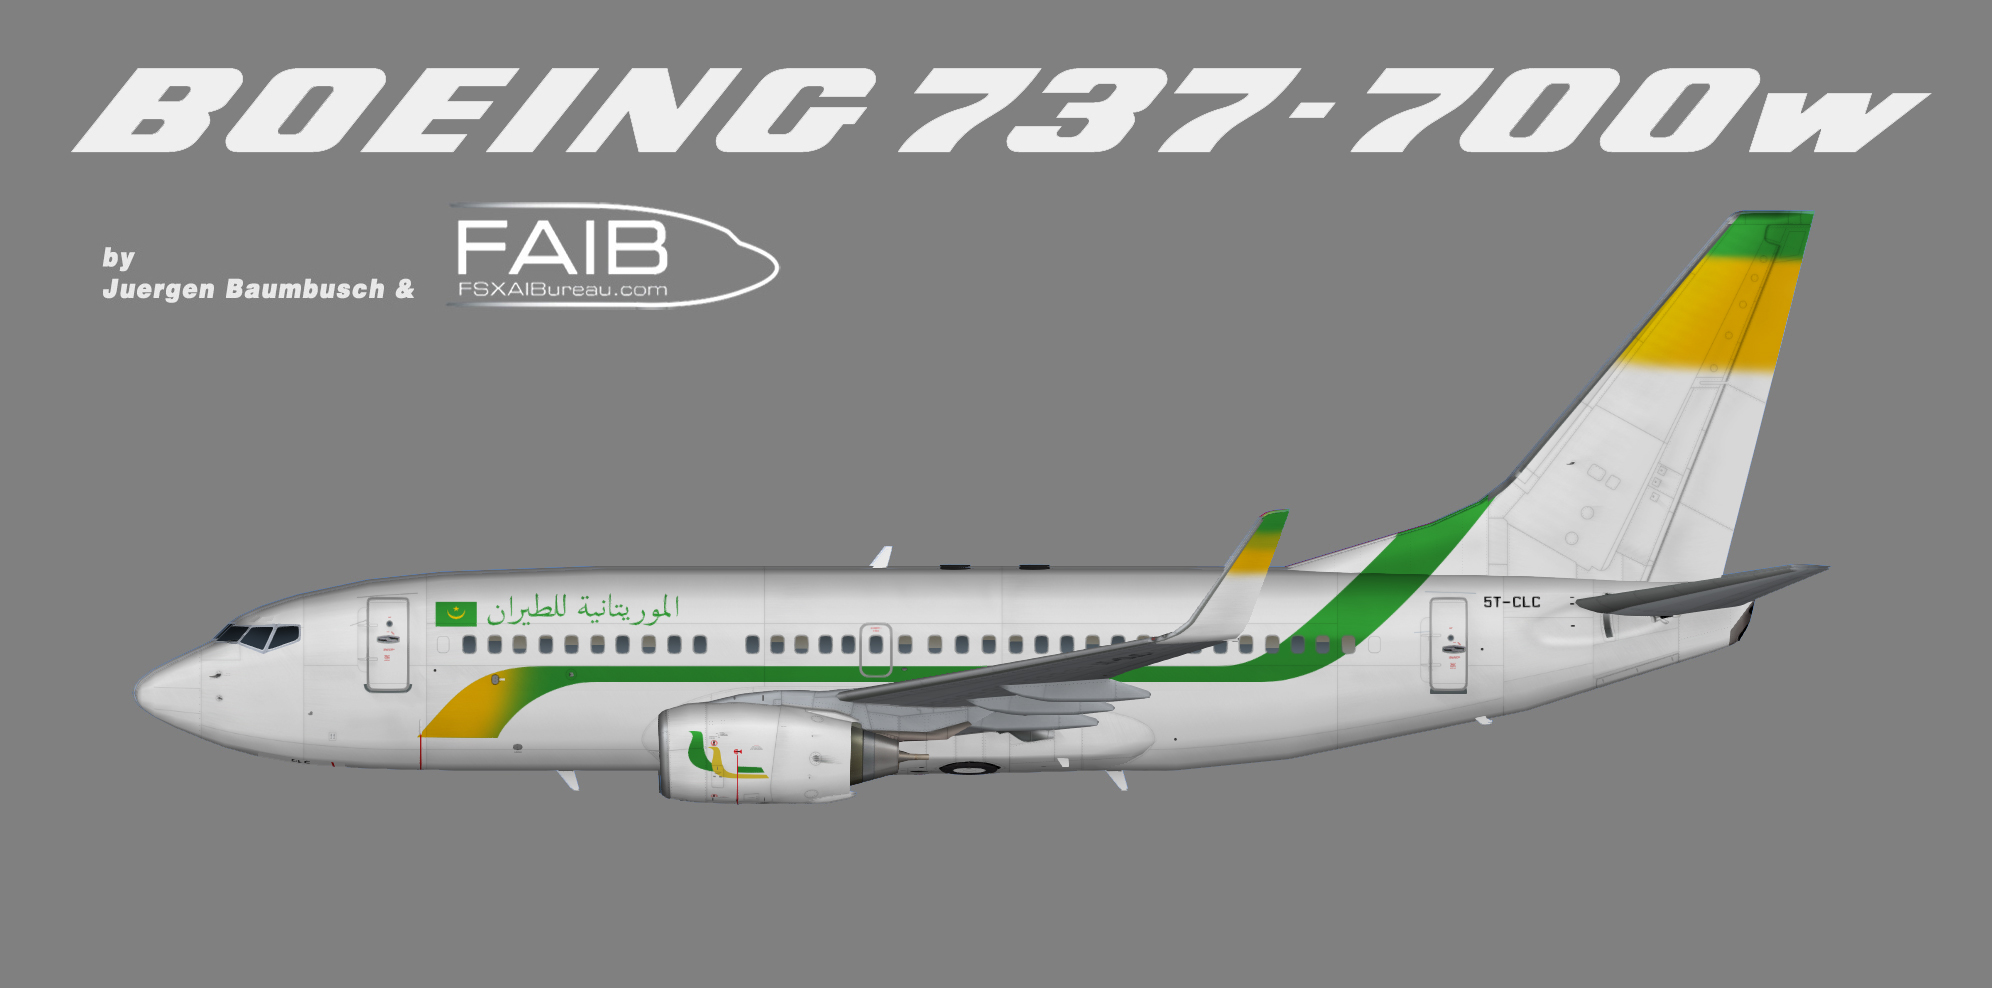 Mauritania Airlines Boeing 737-700w